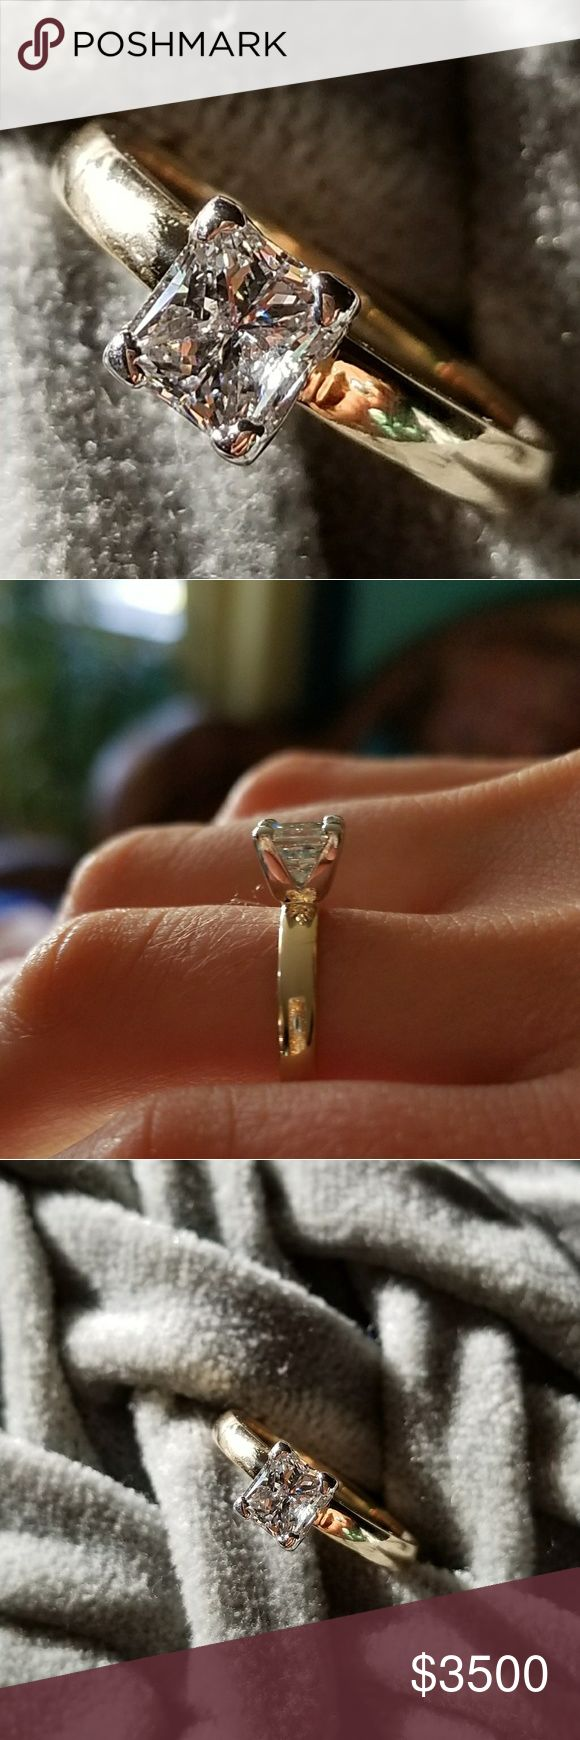 1ct Princess Cut Diamond Ring Genuine diamond. 14 karat gold Custom rolled band. Just upgraded my ring & had my jeweler set this setting on a traditional  band. Sizeable. Serious inquires only please.                         #wedding band, wedding ring, engagement band, engagement ring, princess cut, 1 carat Jewelry Rings #princesscutengagementring #goldweddingring